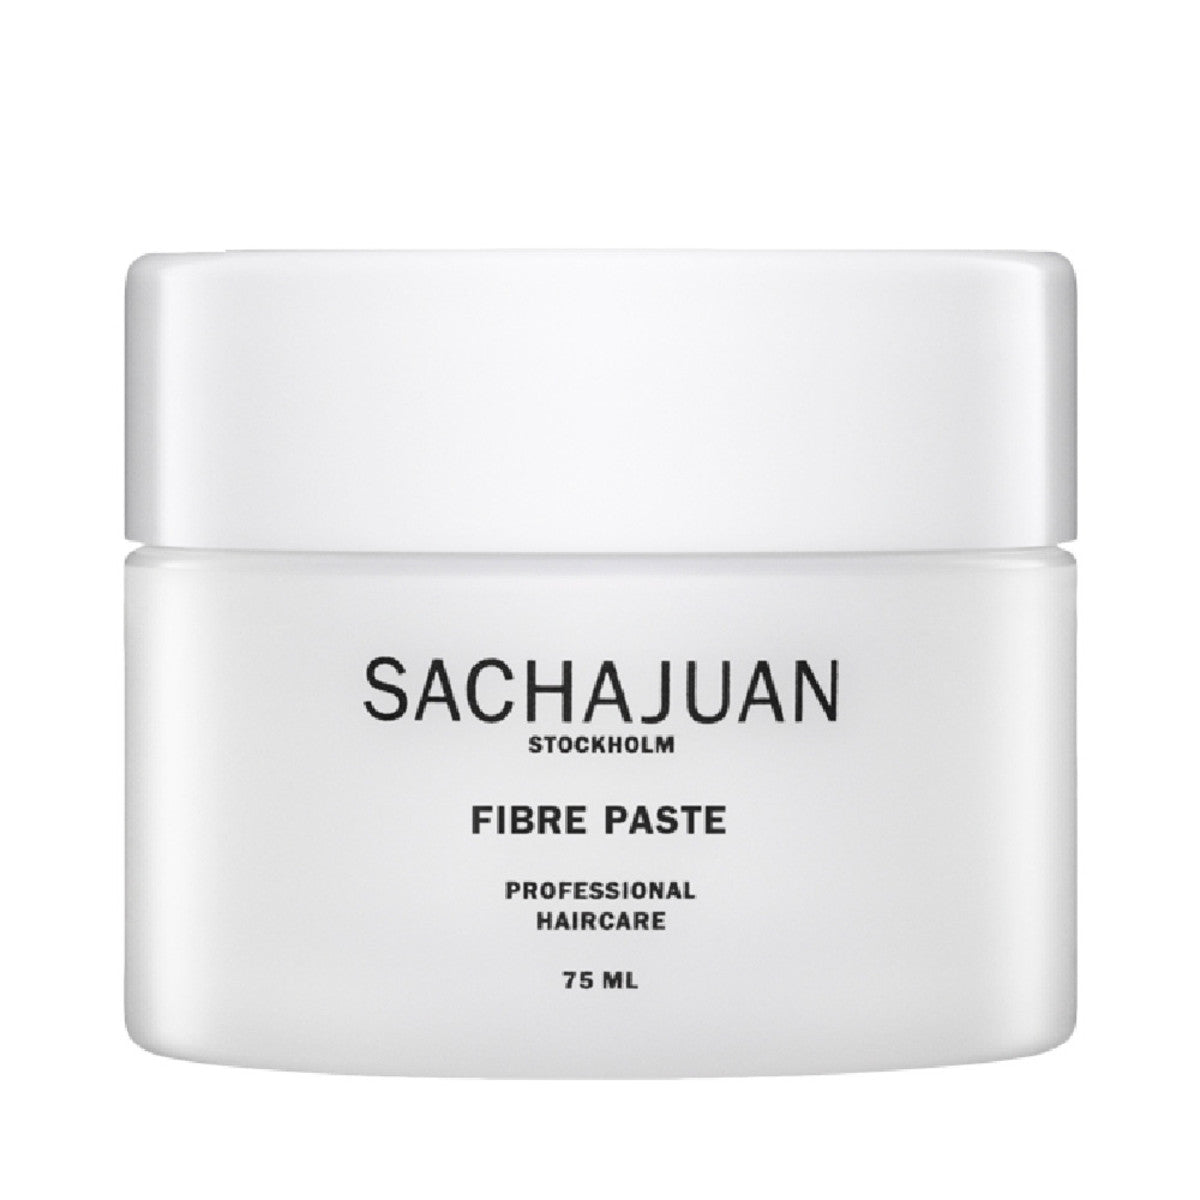 SACHAJUAN Fibre Paste 75 ml - Brazilian Soul Beauty SACHAJUAN - Brazilian Soul Beauty